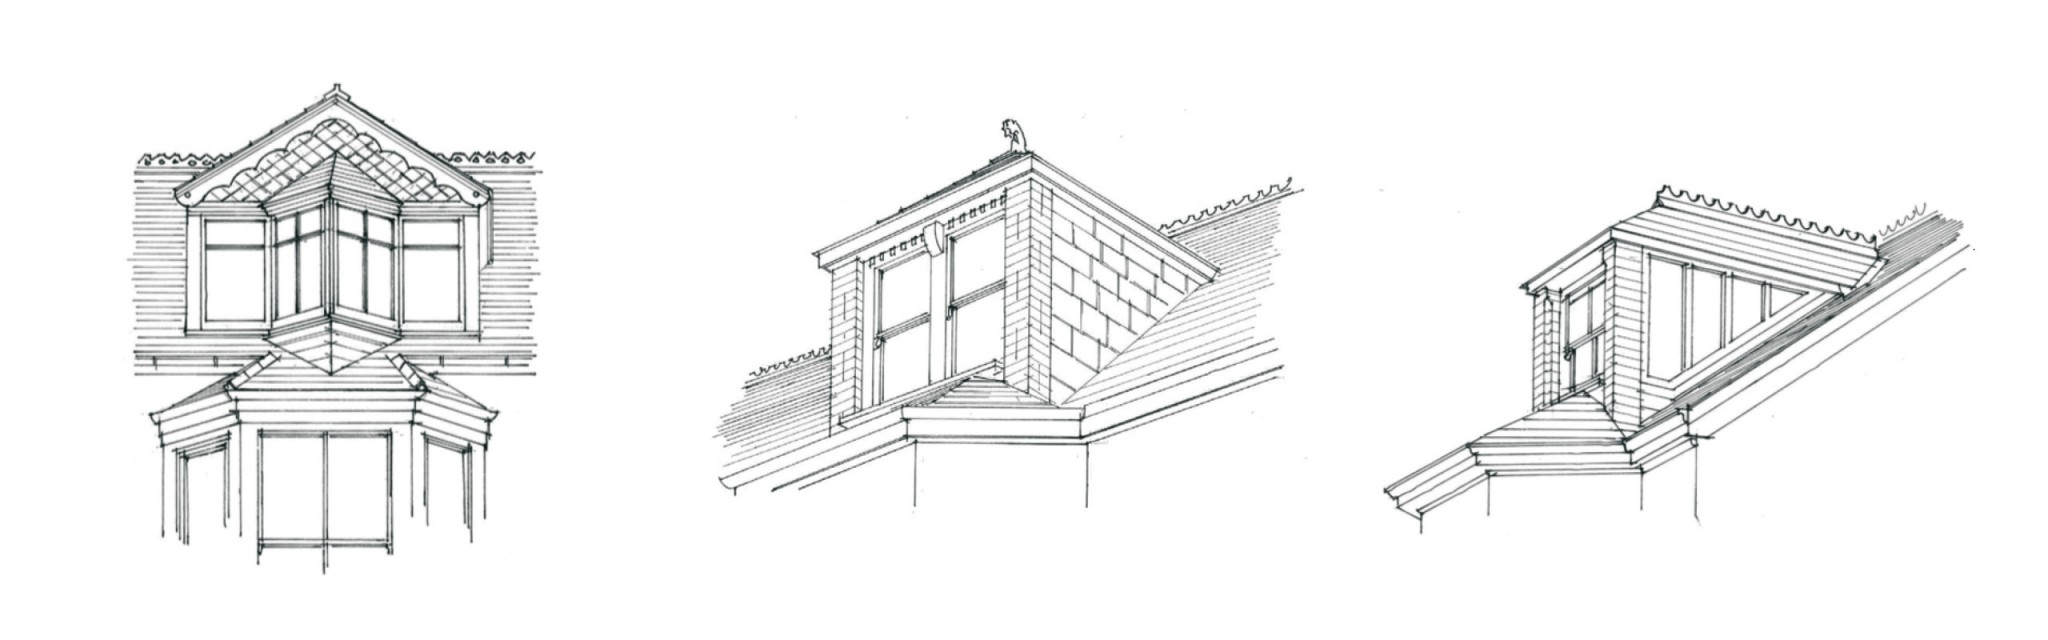 Sketch of roof and window